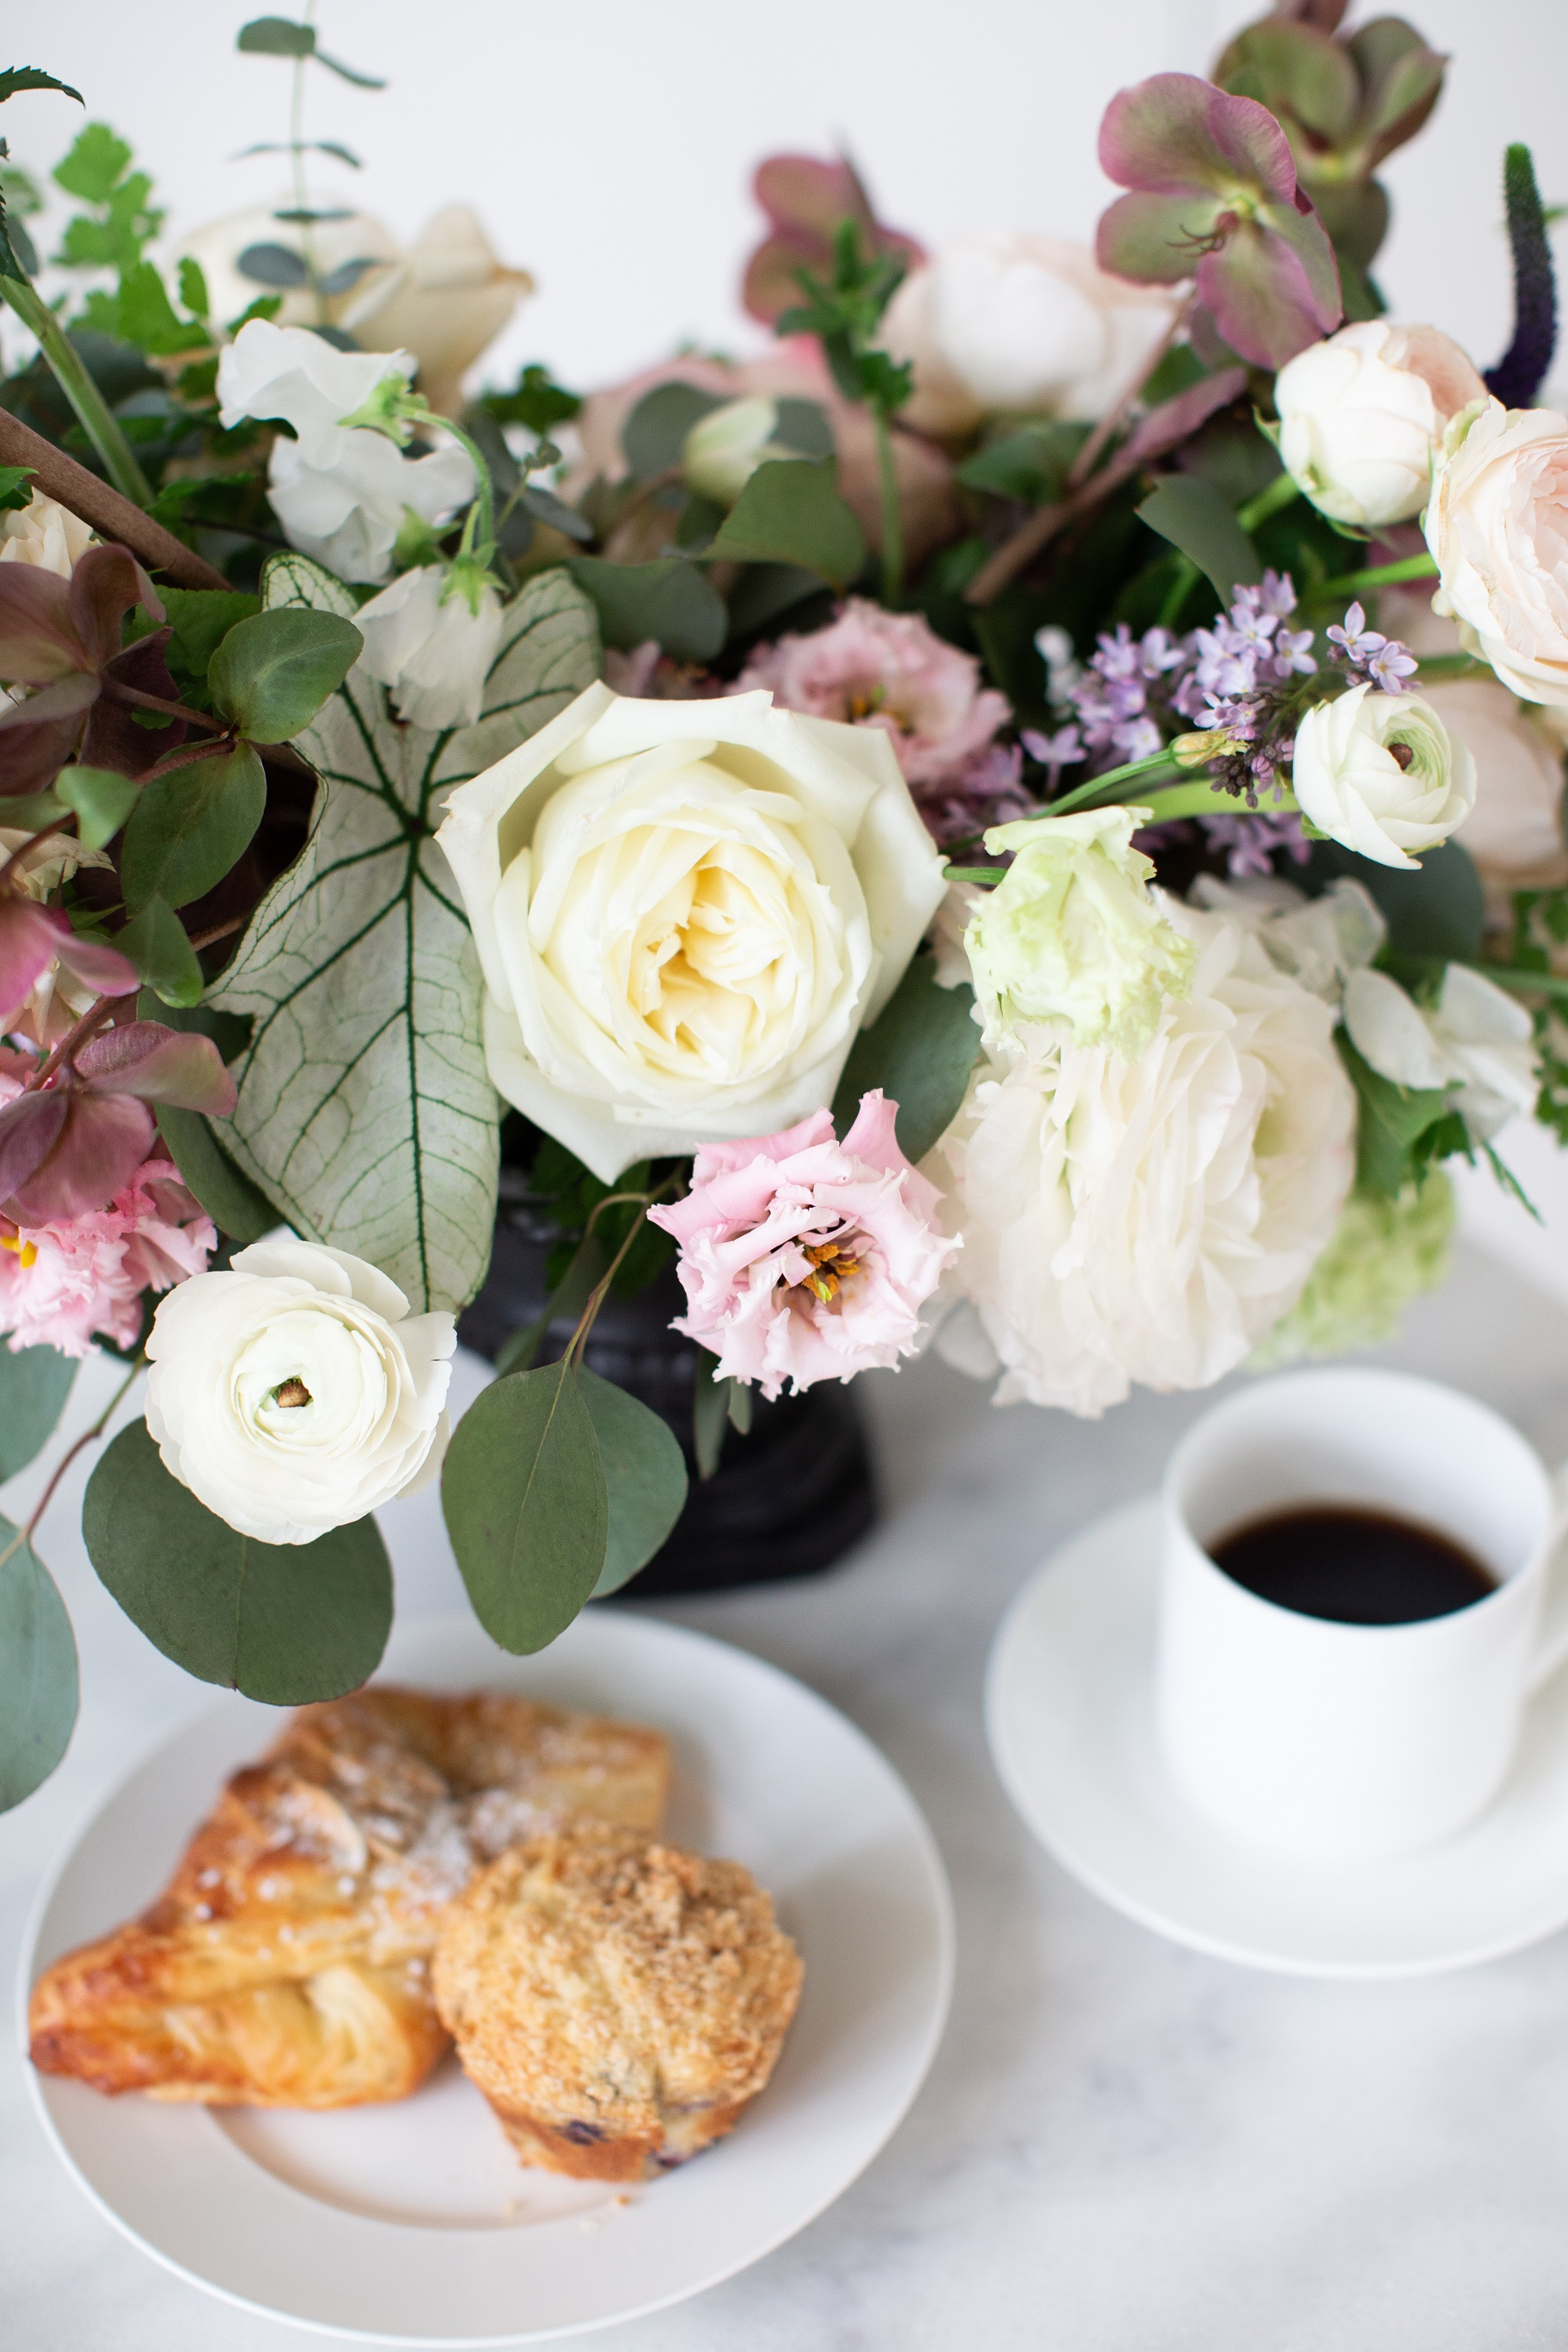 Breakfast_With_Flowers.jpg